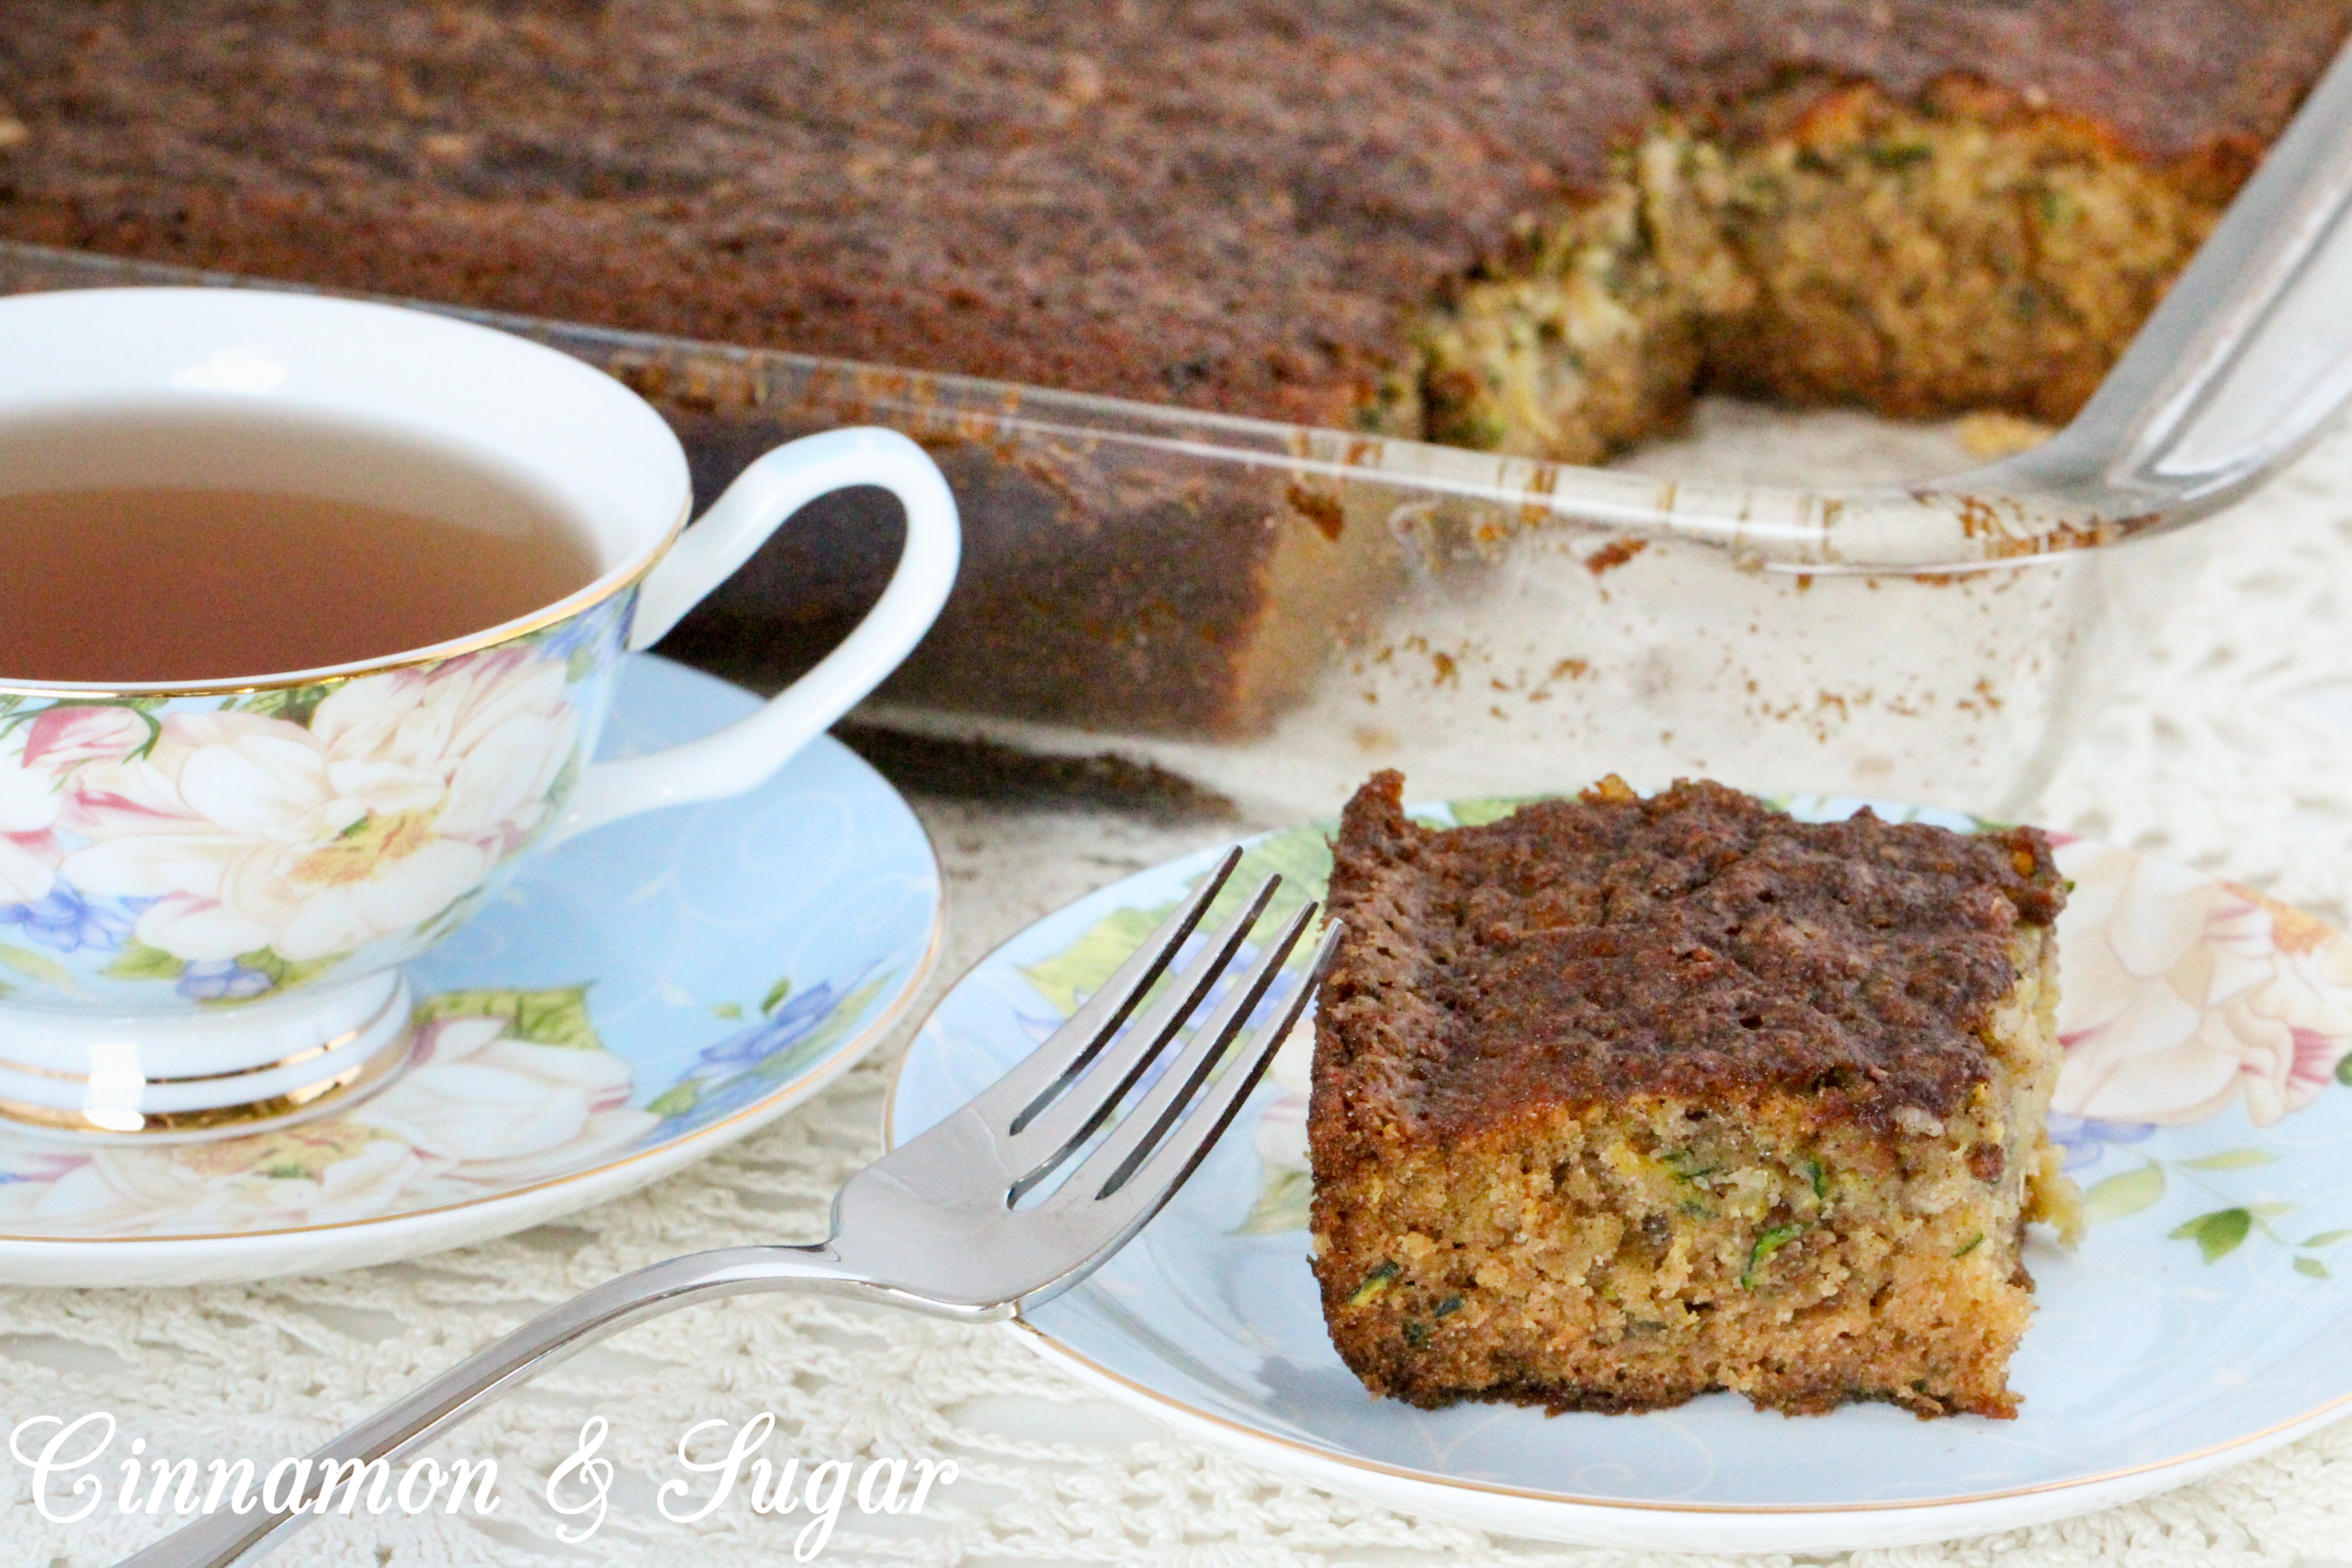 With a combination of both veggies and fruit, Zucchini Pineapple Cake is a supremely moist cake that's suitable for both dessert, snacks, or even breakfast. Recipe shared with permission granted by Krista Davis, author of THE DOG WHO KNEW TOO MUCH.